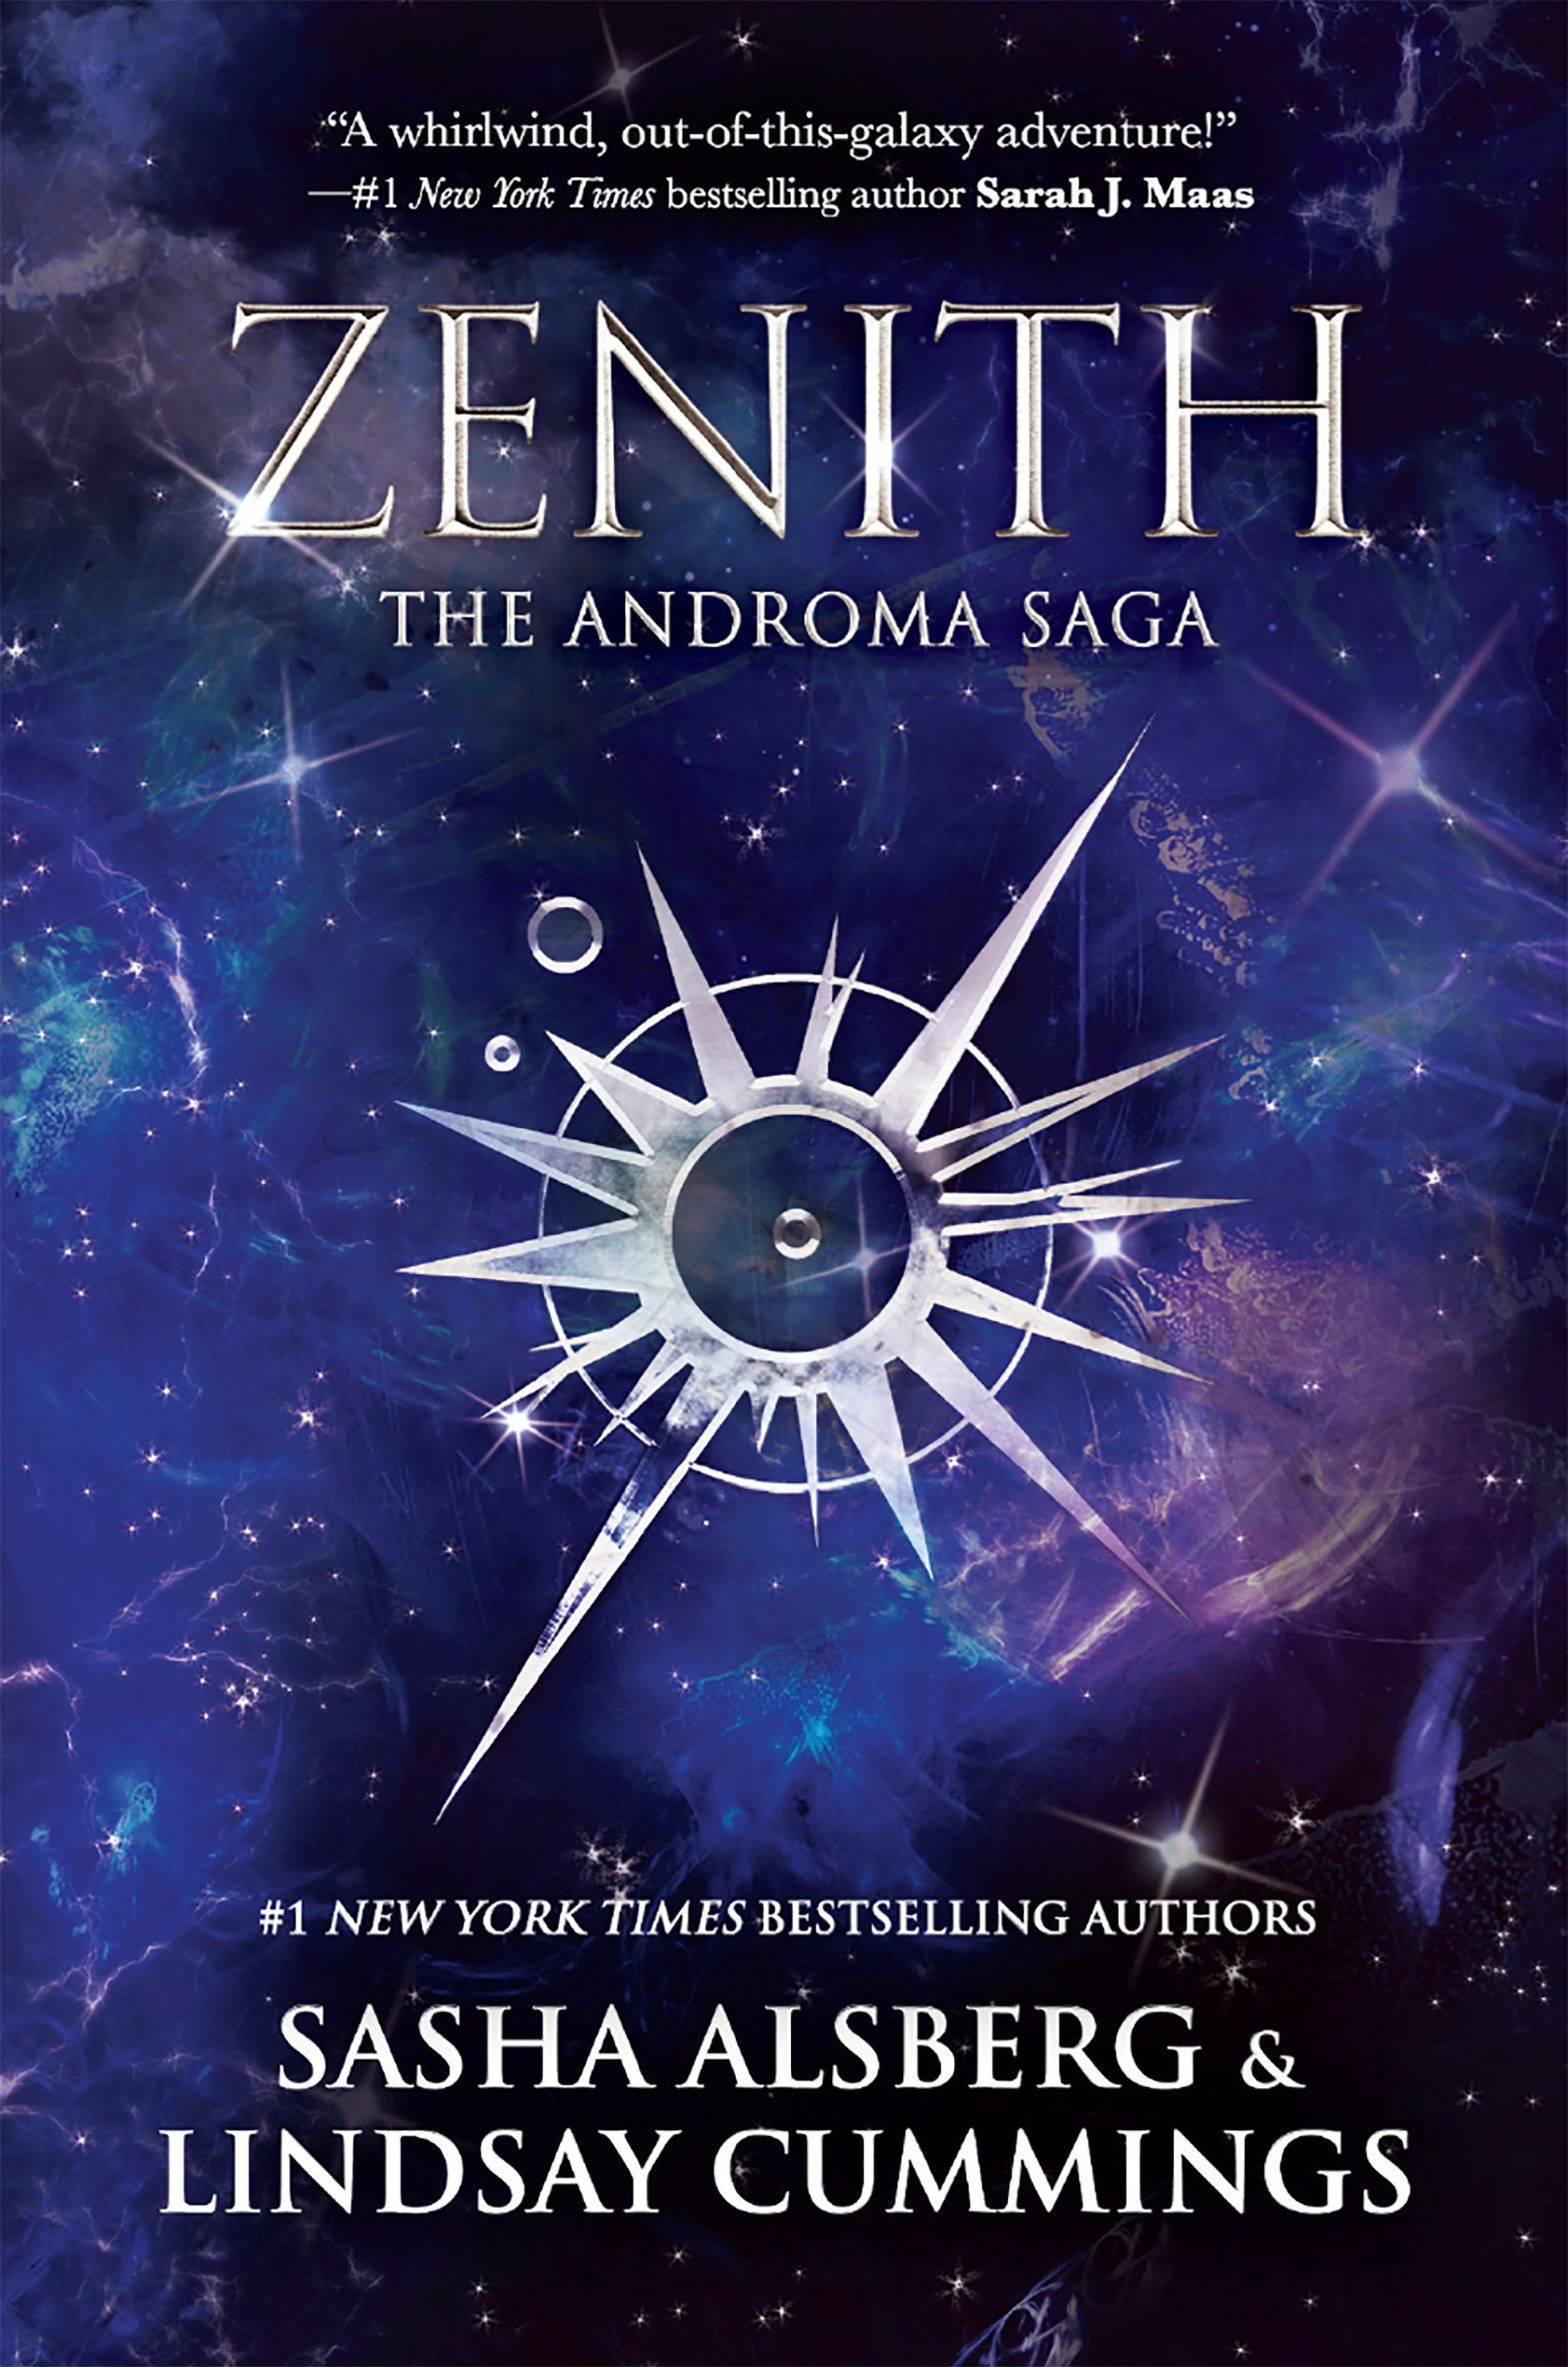 Image result for Zenith book